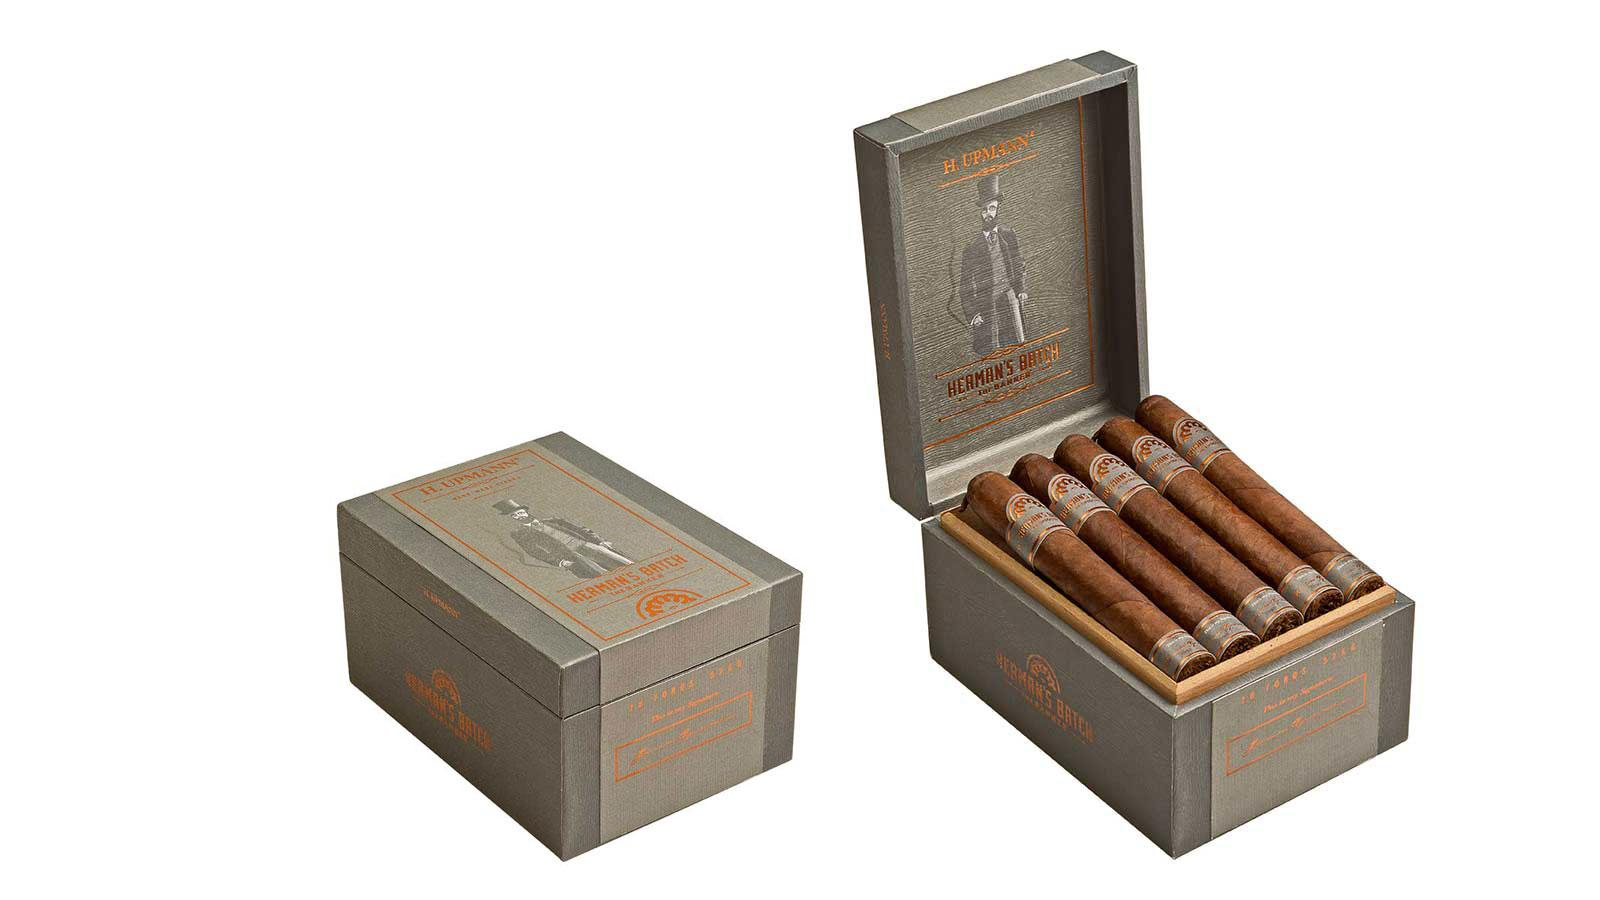 New Cigar Honors H. Upmann's Founder